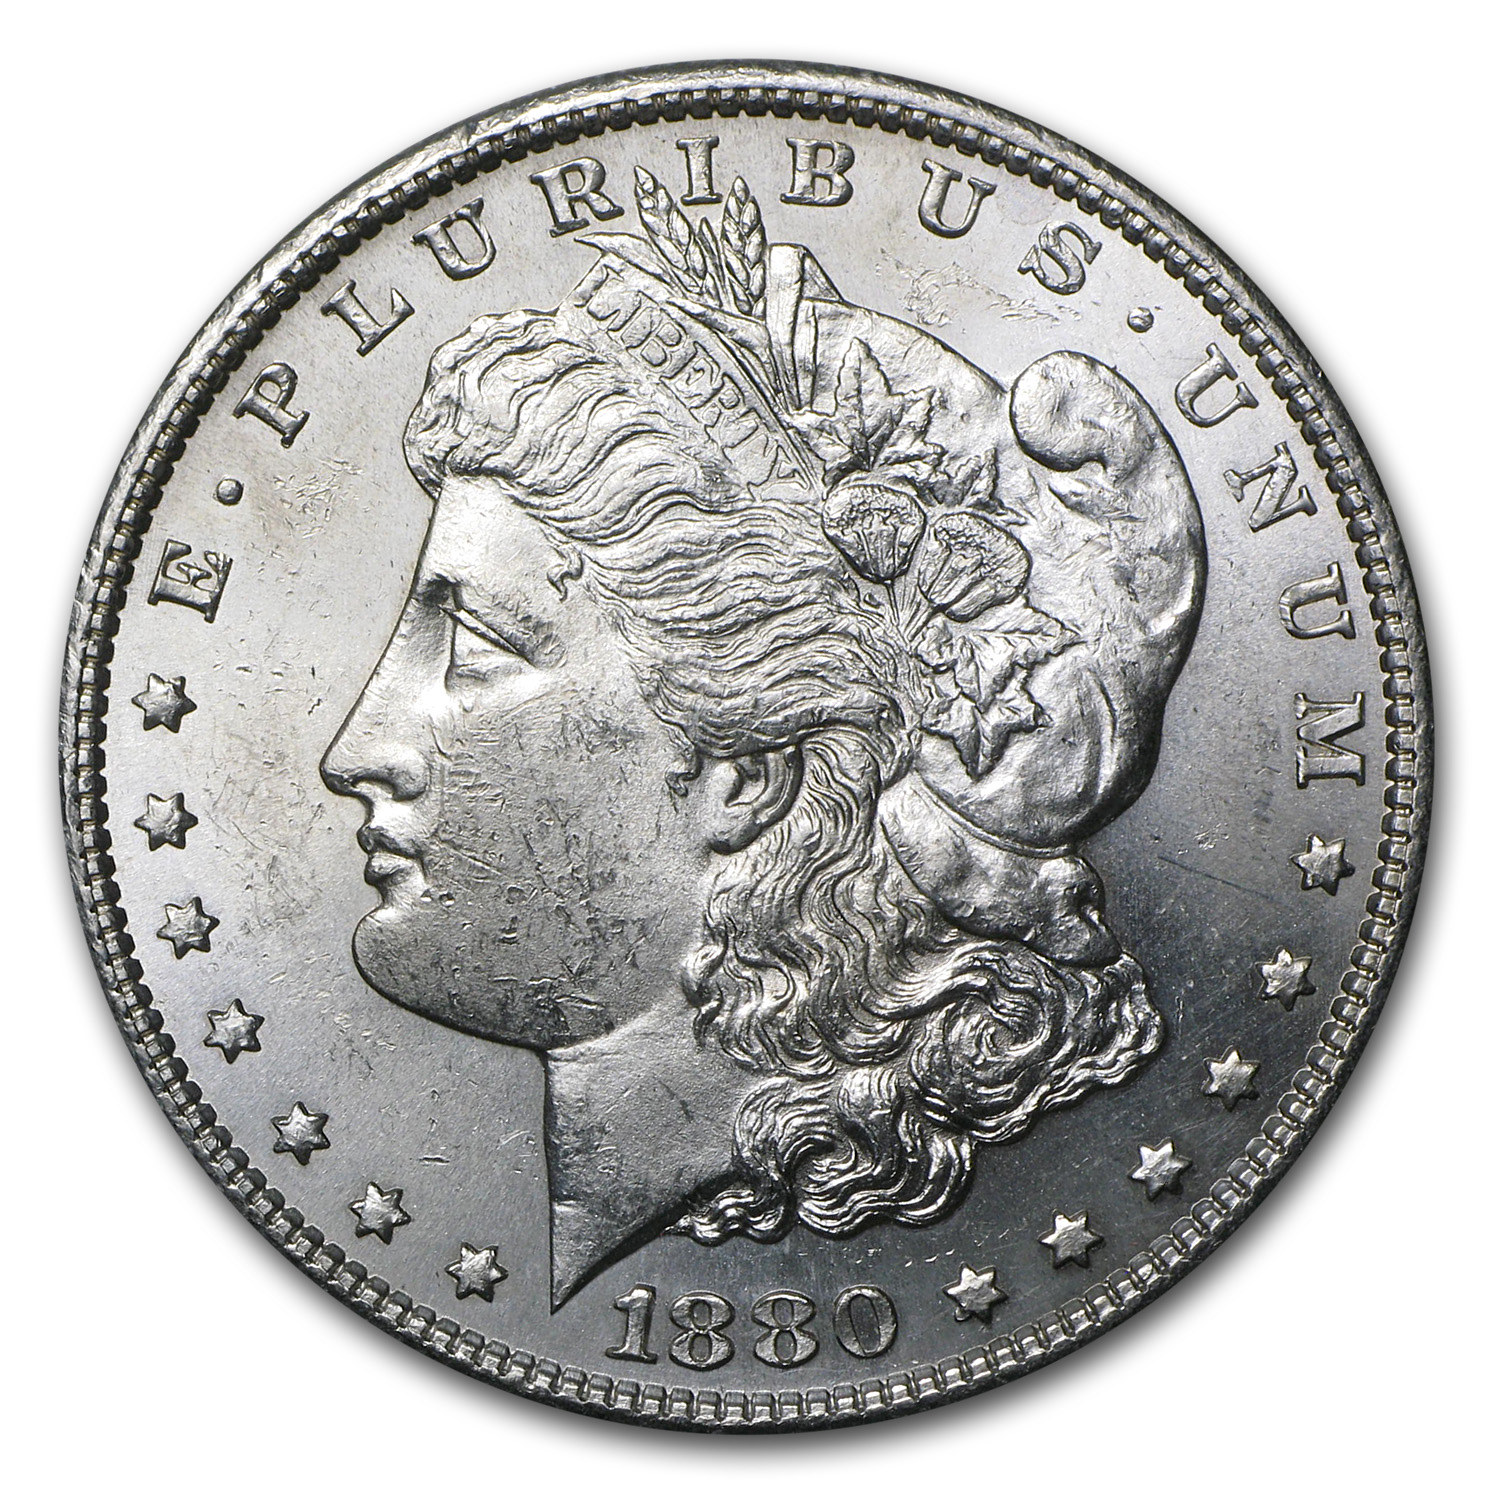 1880-S Morgan Dollar - Brilliant Uncirculated